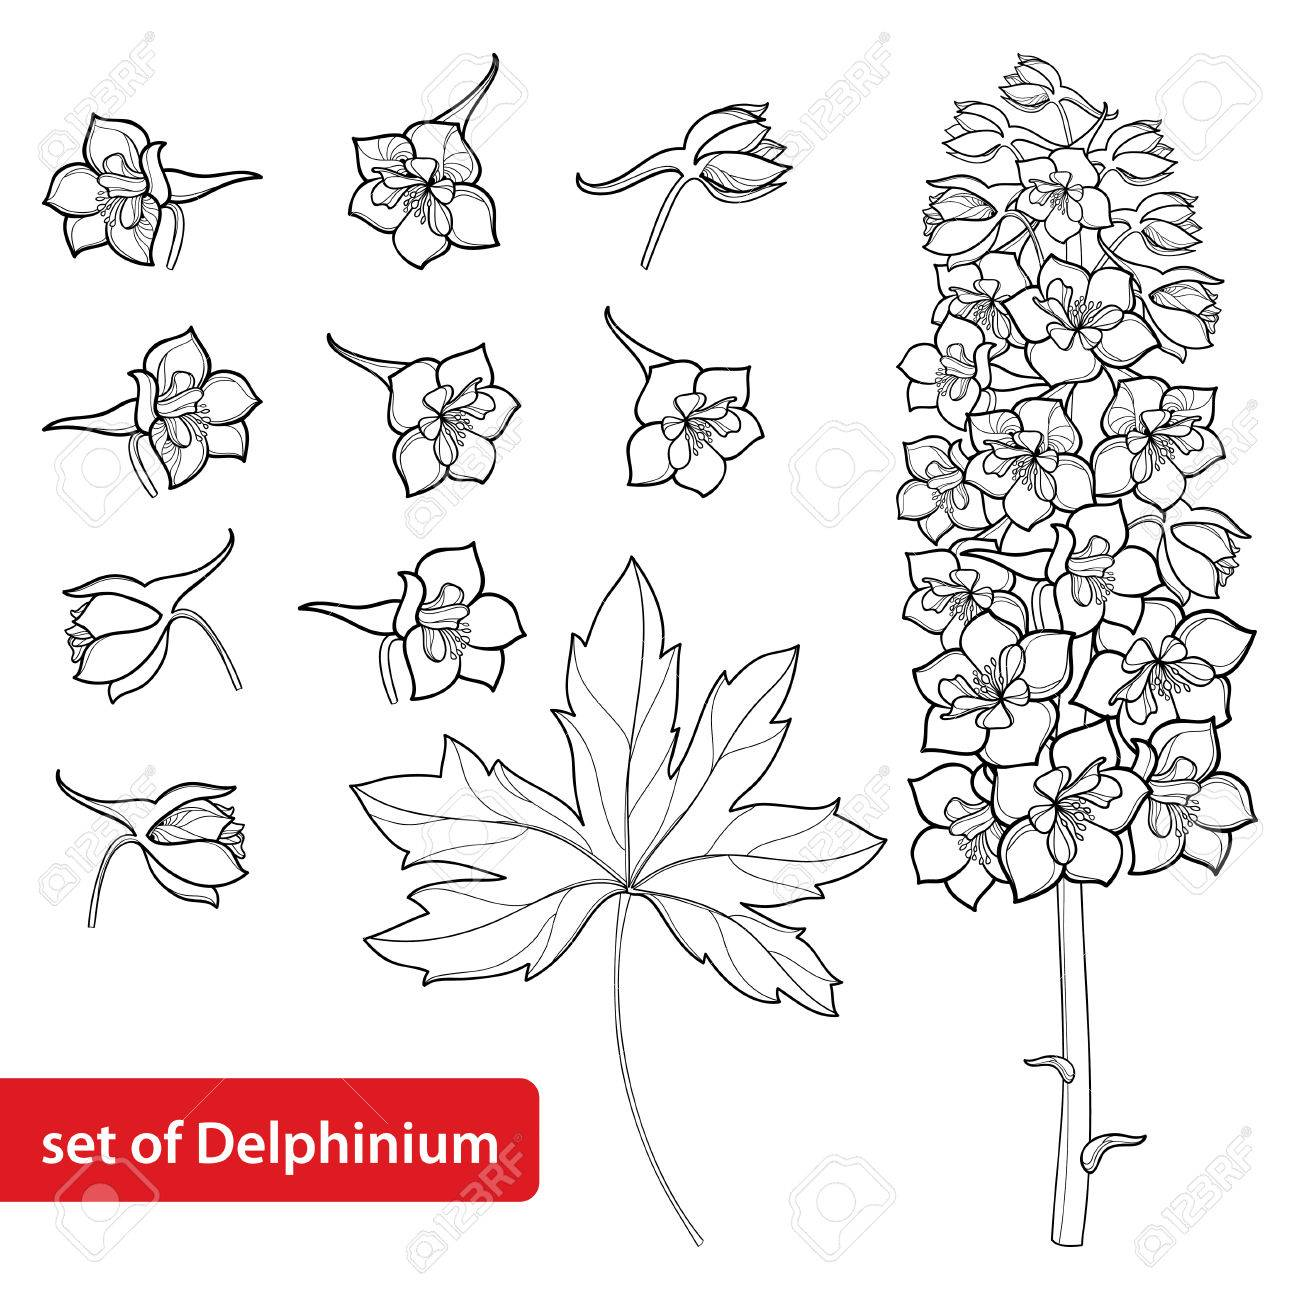 Set with delphinium or larkspur flower bunch bud and leaf set with delphinium or larkspur flower bunch bud and leaf in black isolated mightylinksfo